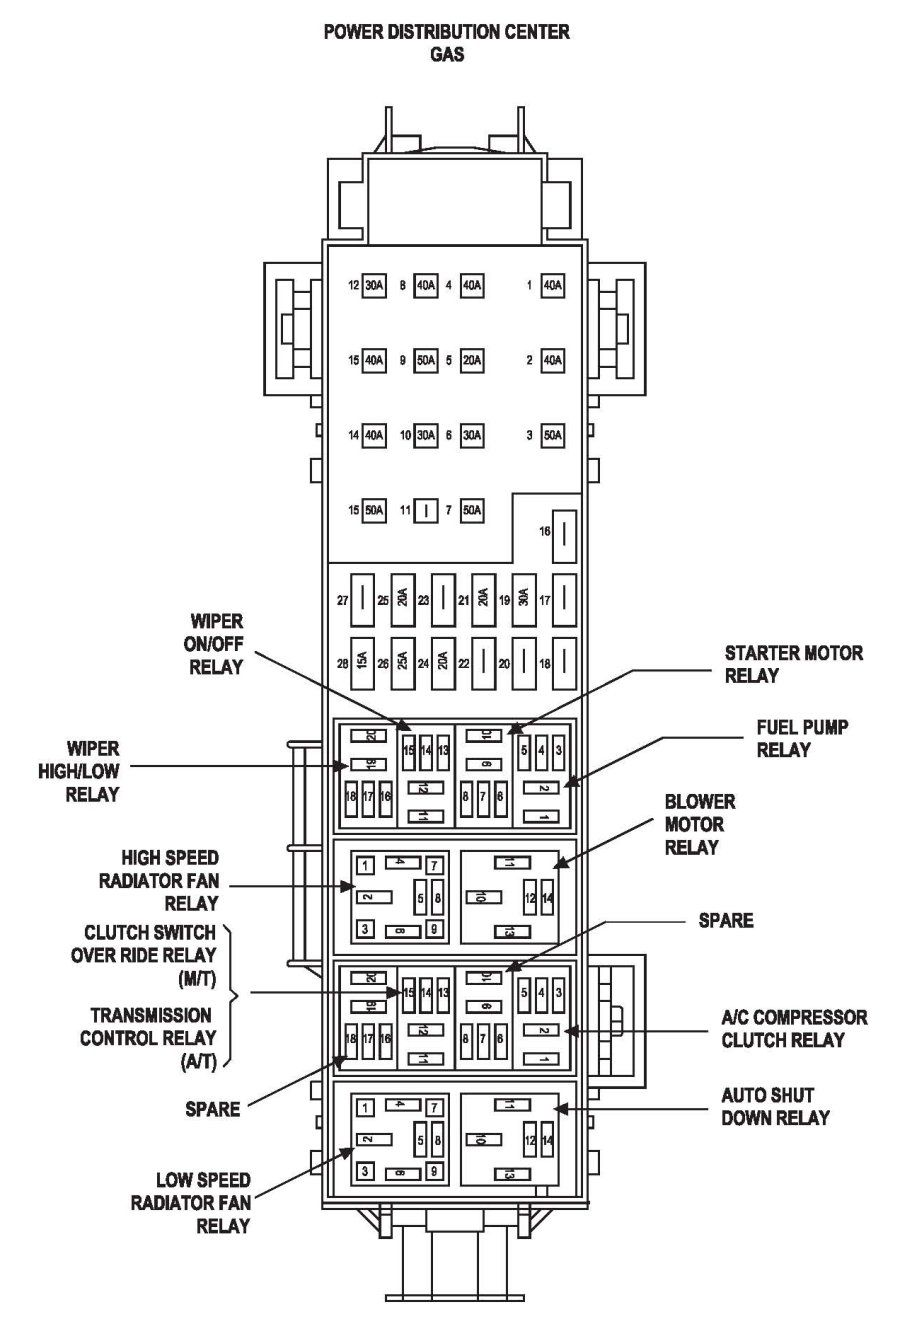 Jeep Liberty Fuse Box Diagram - image details